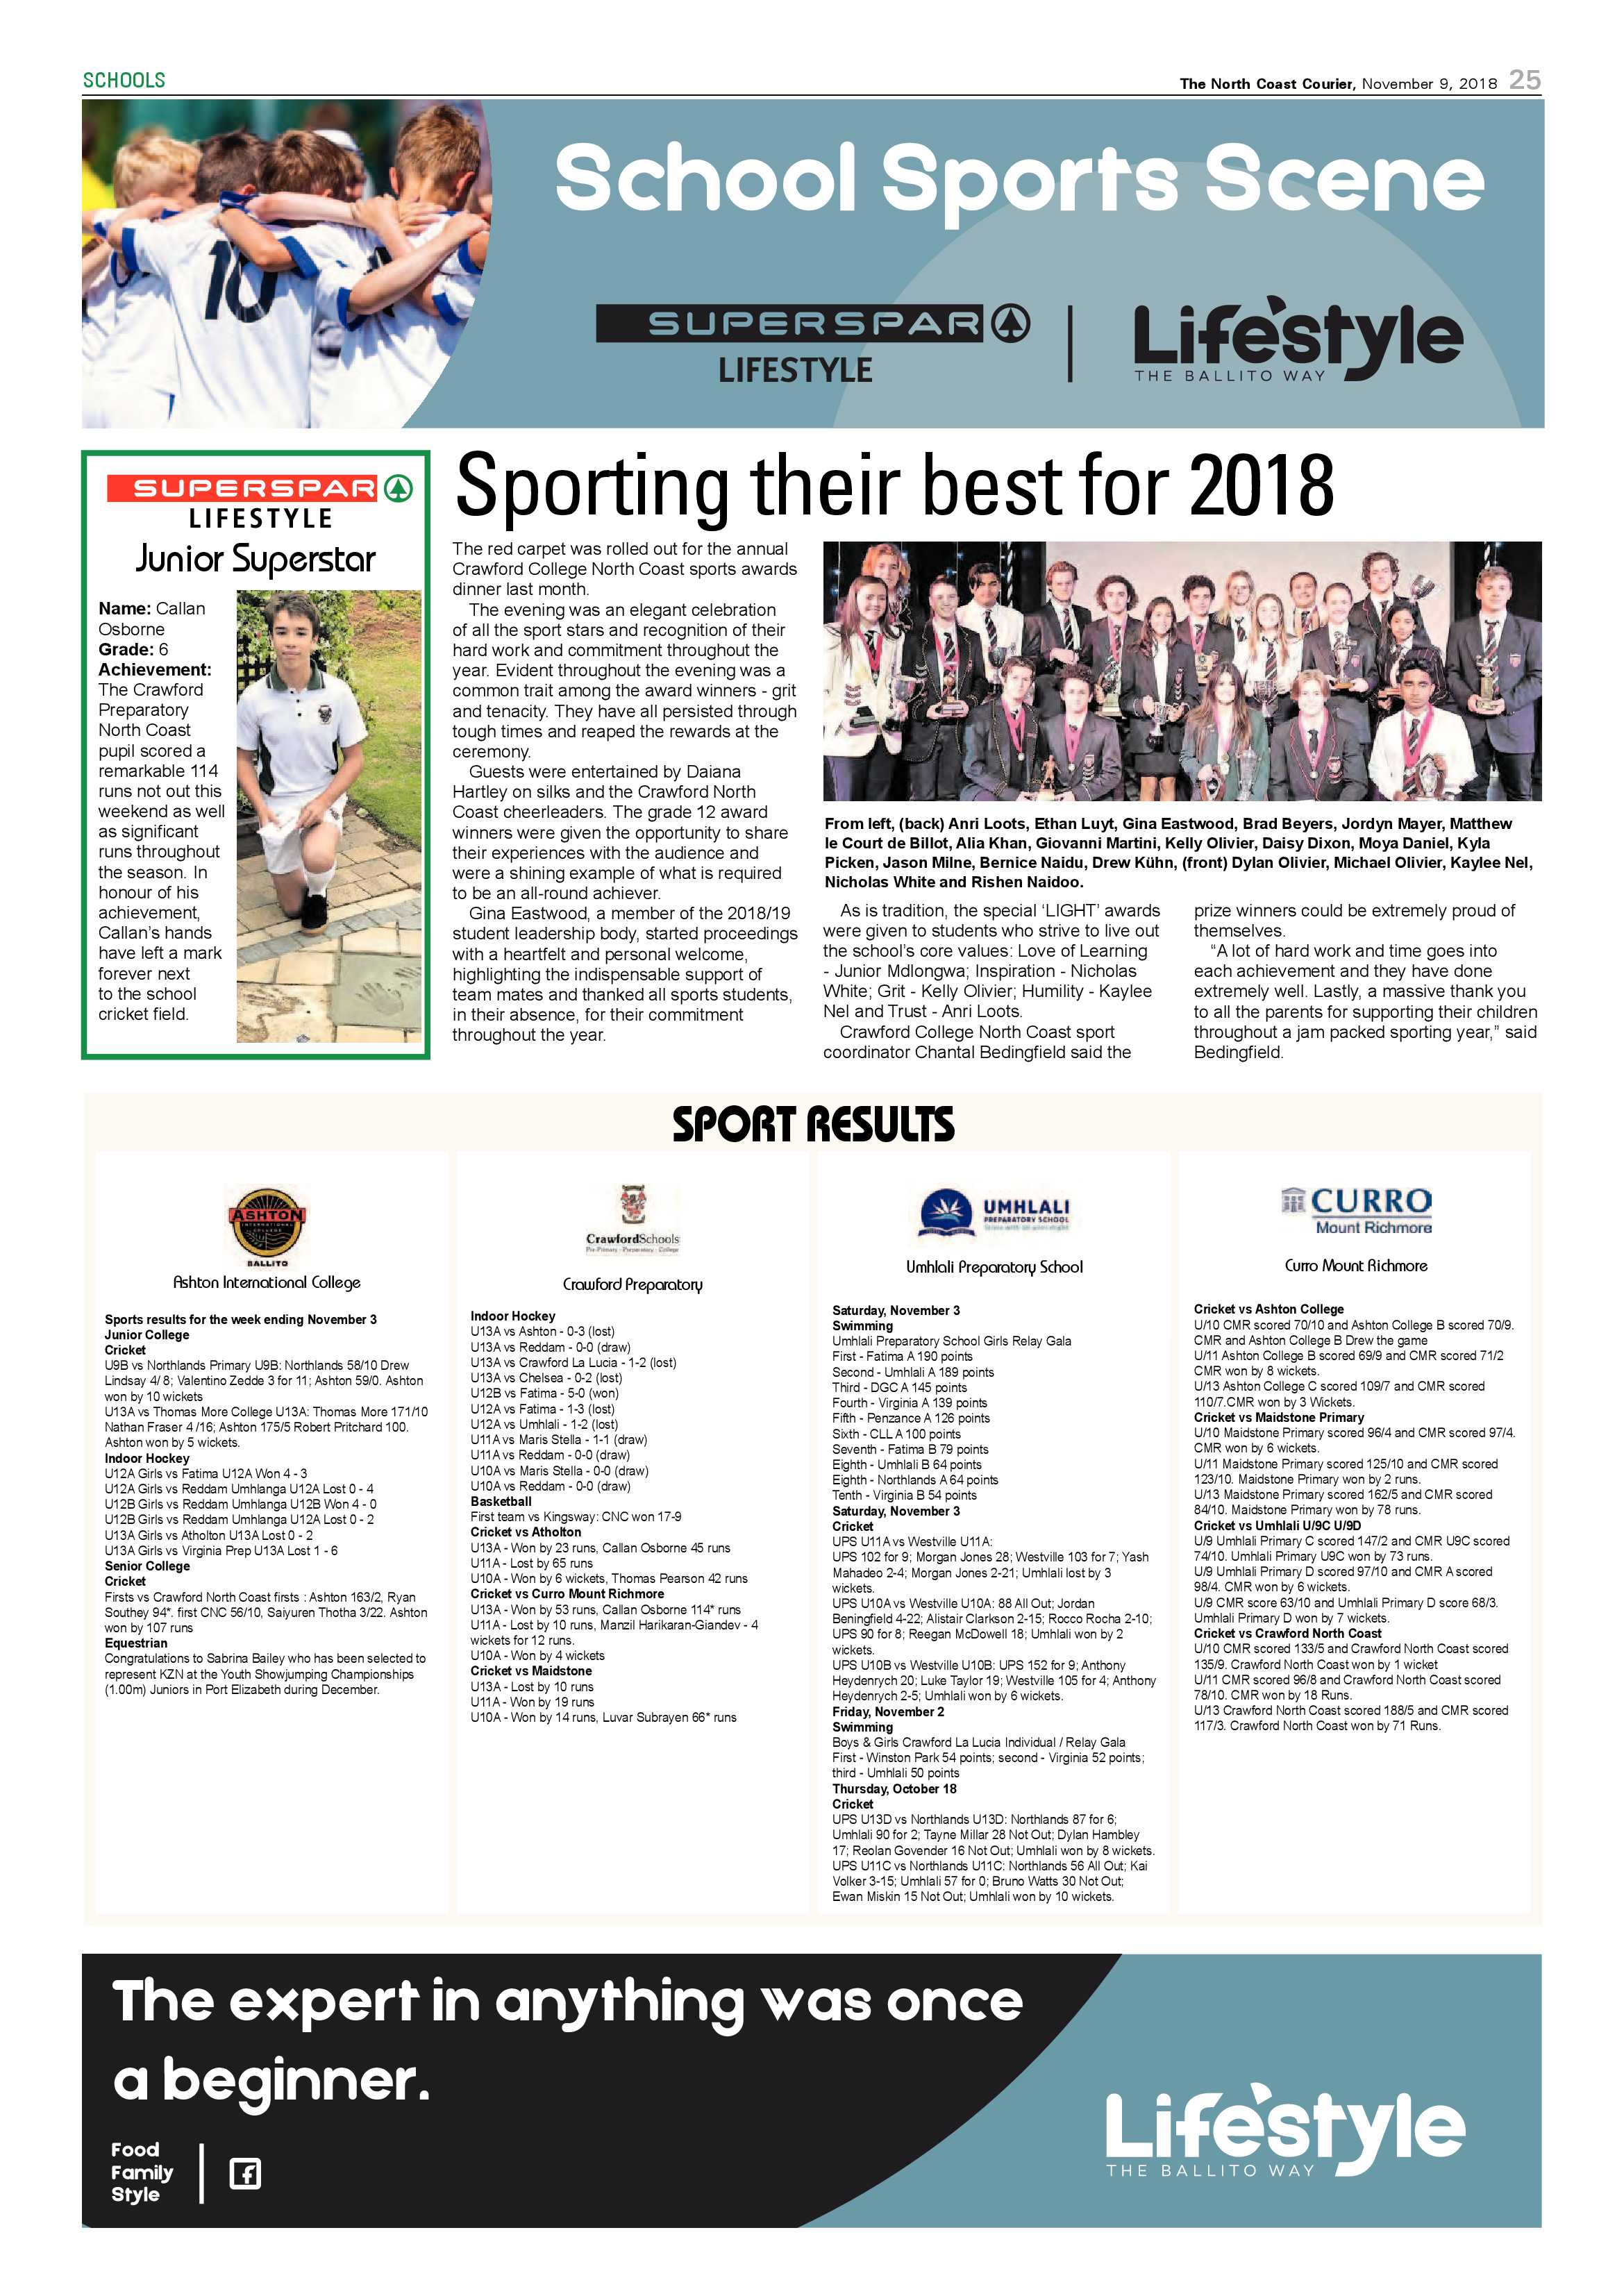 north-coast-courier-09-november-2018-epapers-page-25